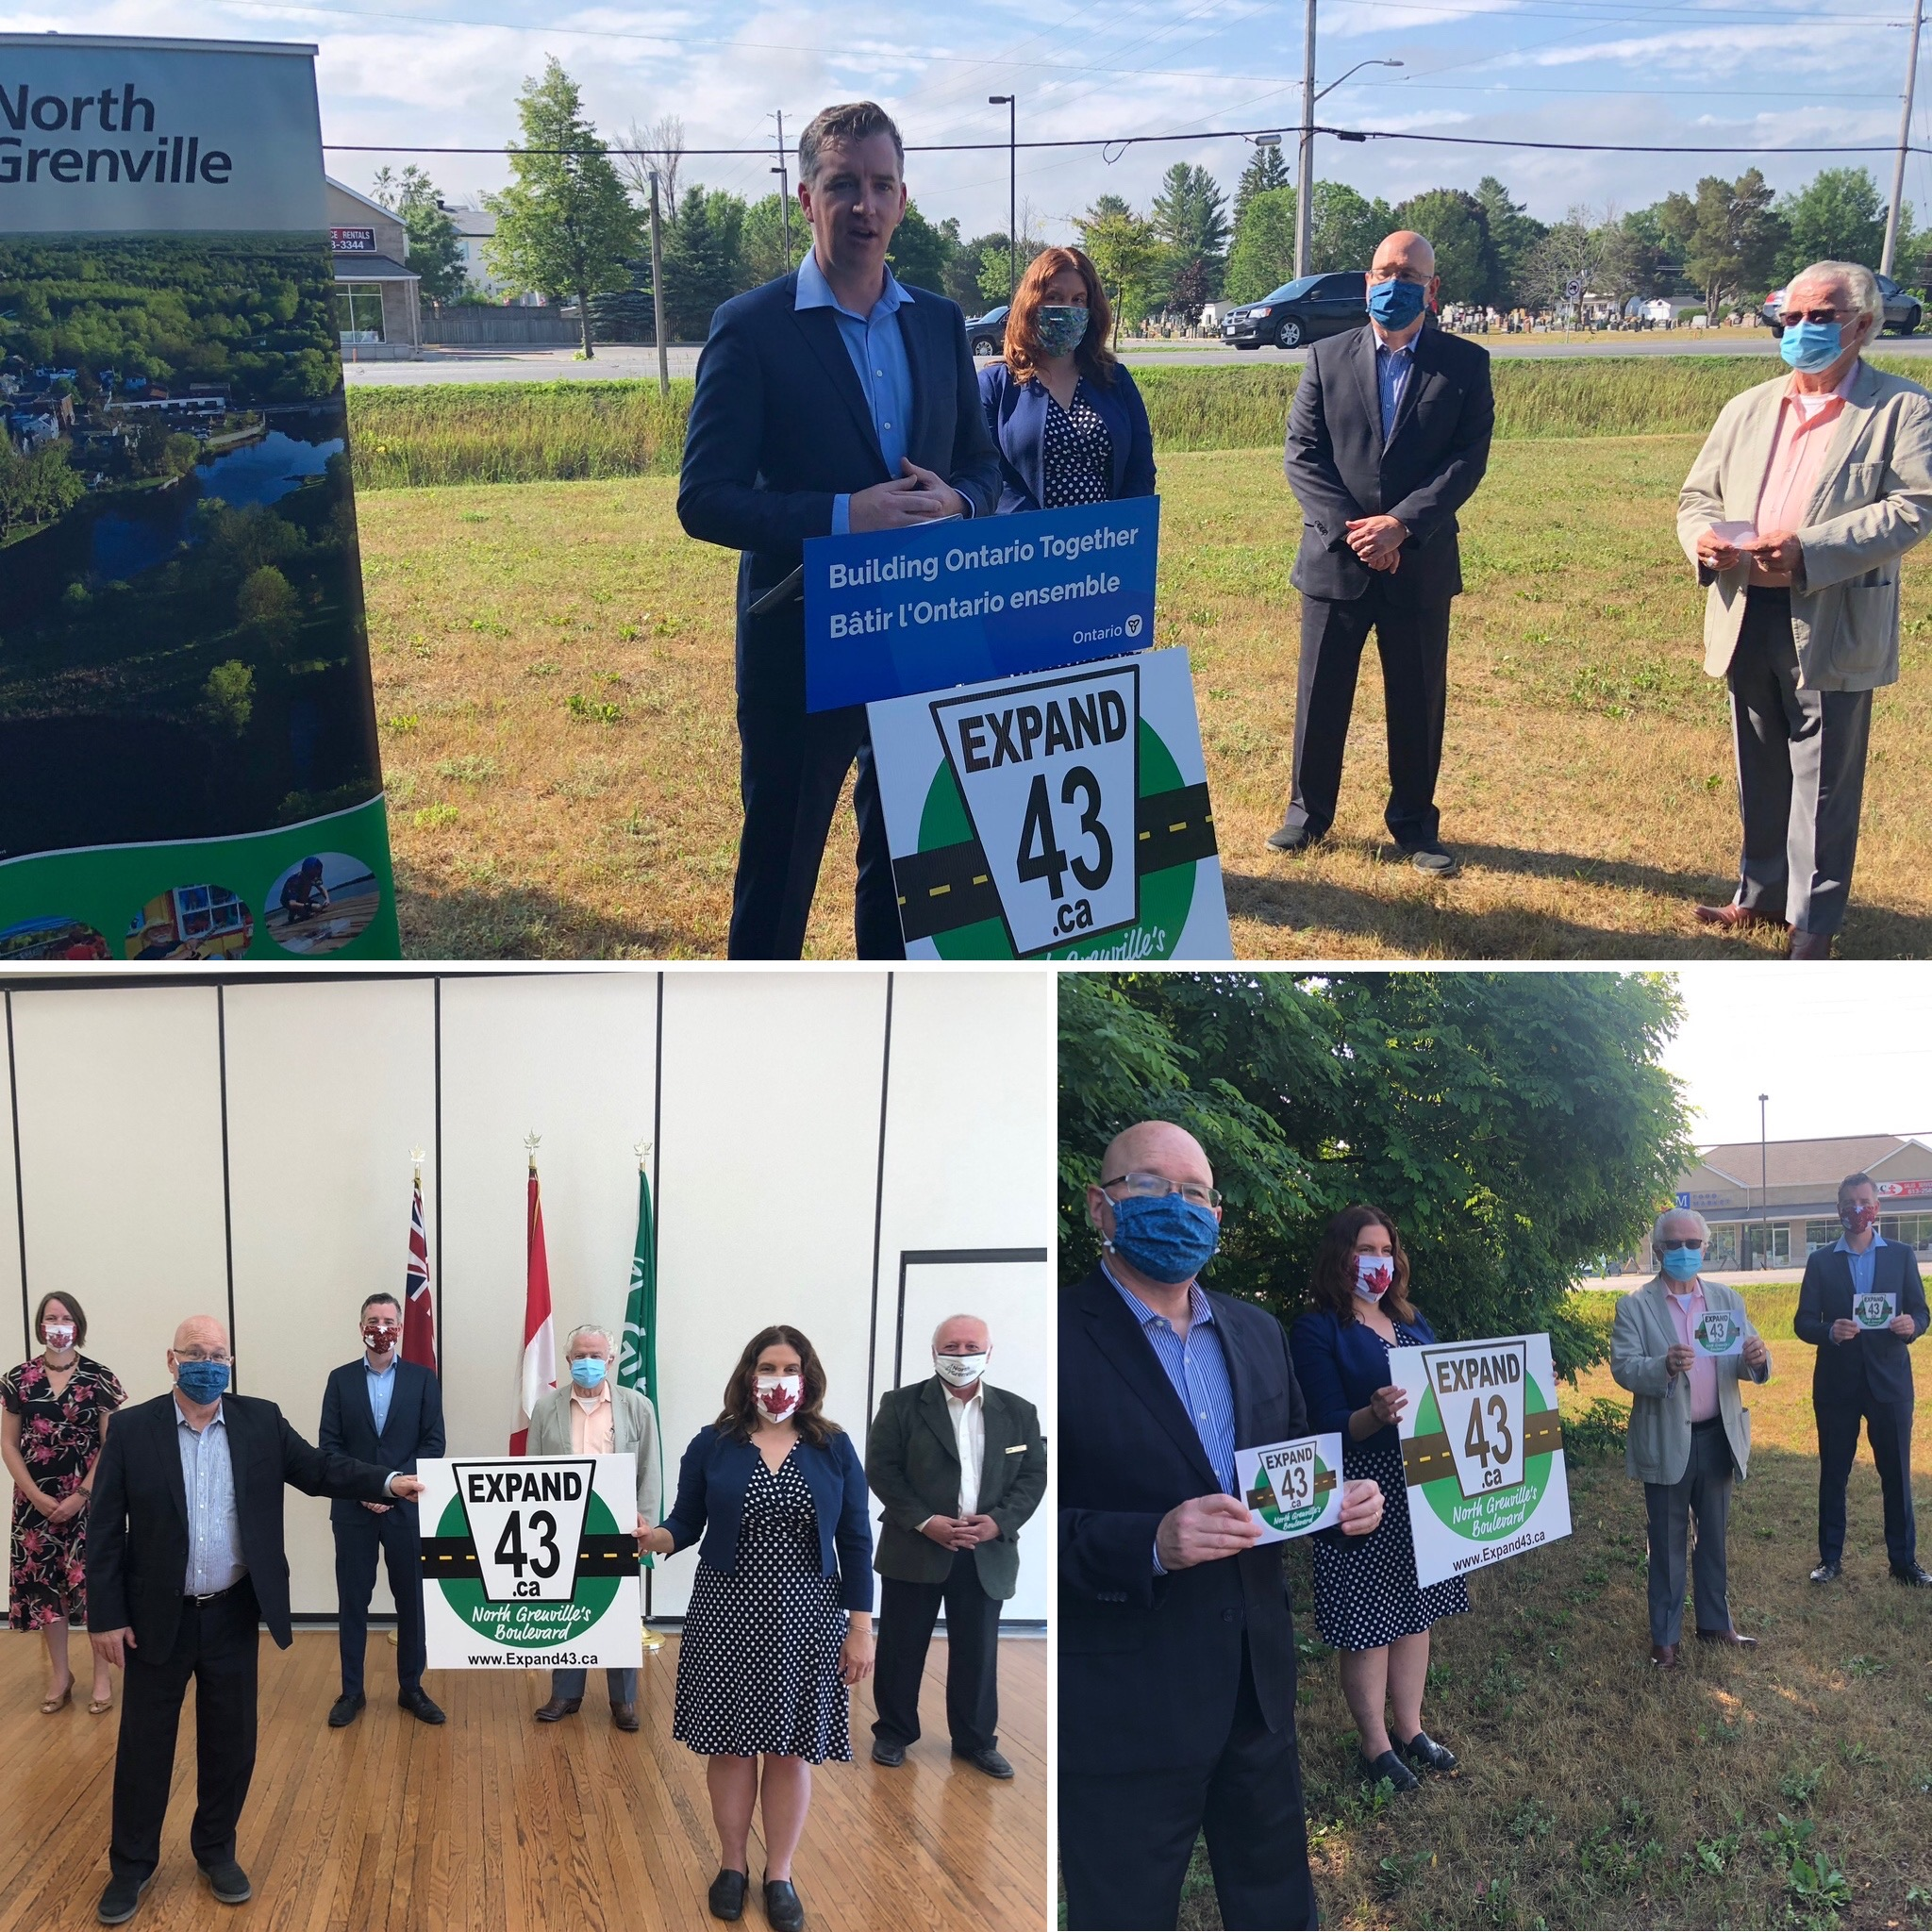 Federal funding for the County Road 43 expansion project secured